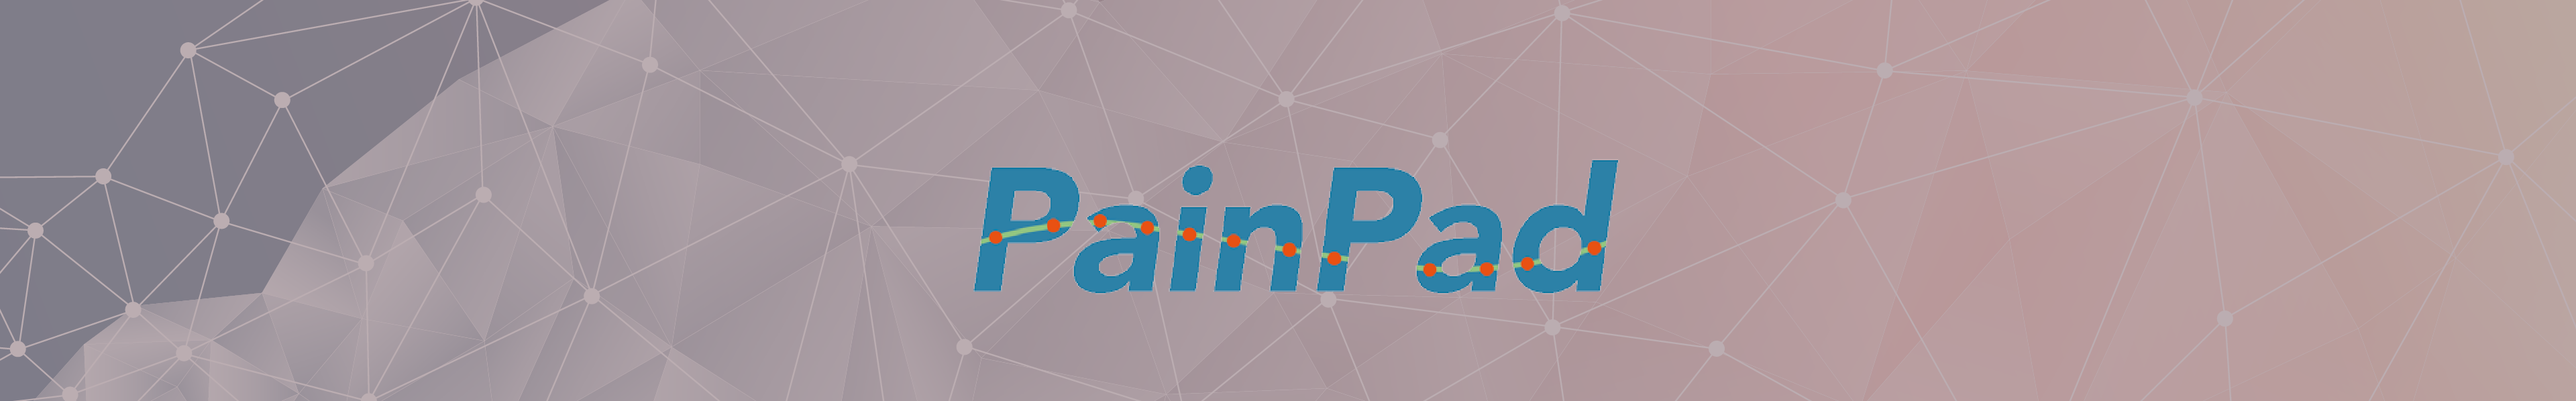 PainPad - Better quality pain data to optimise care and get patients on the road to recovery - Banner